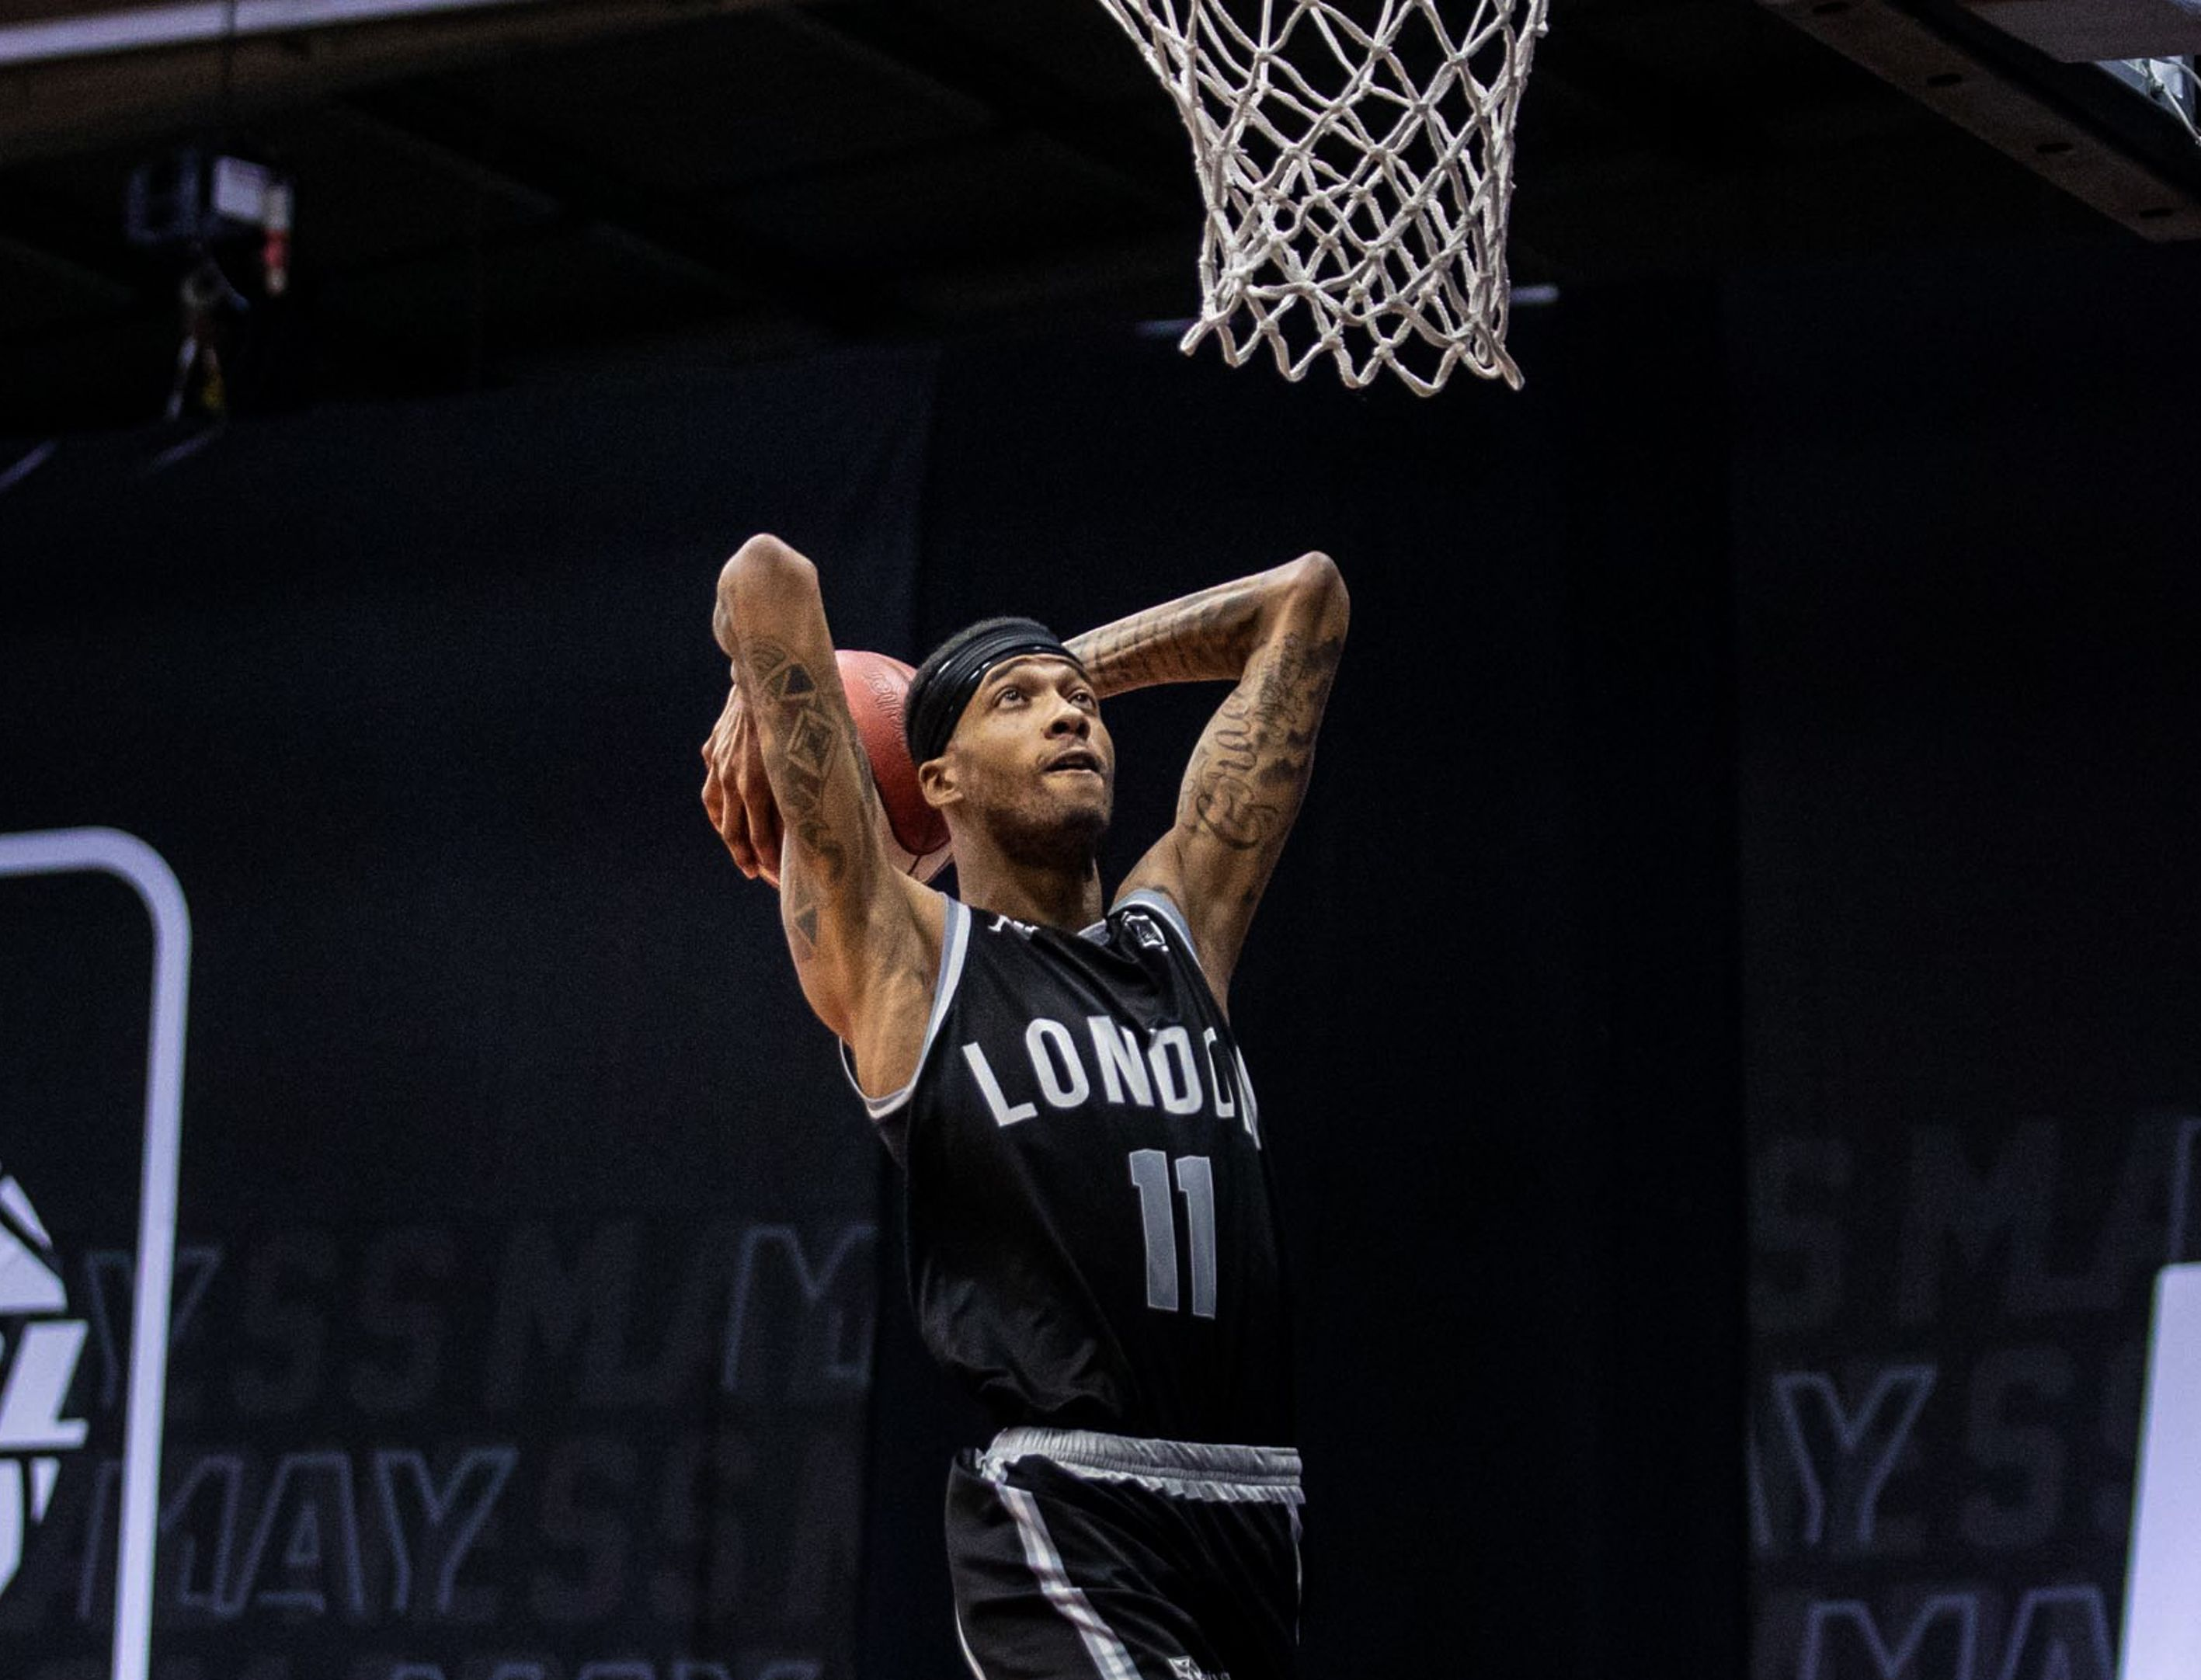 London Lions confirm Dirk Williams to return for upcoming season